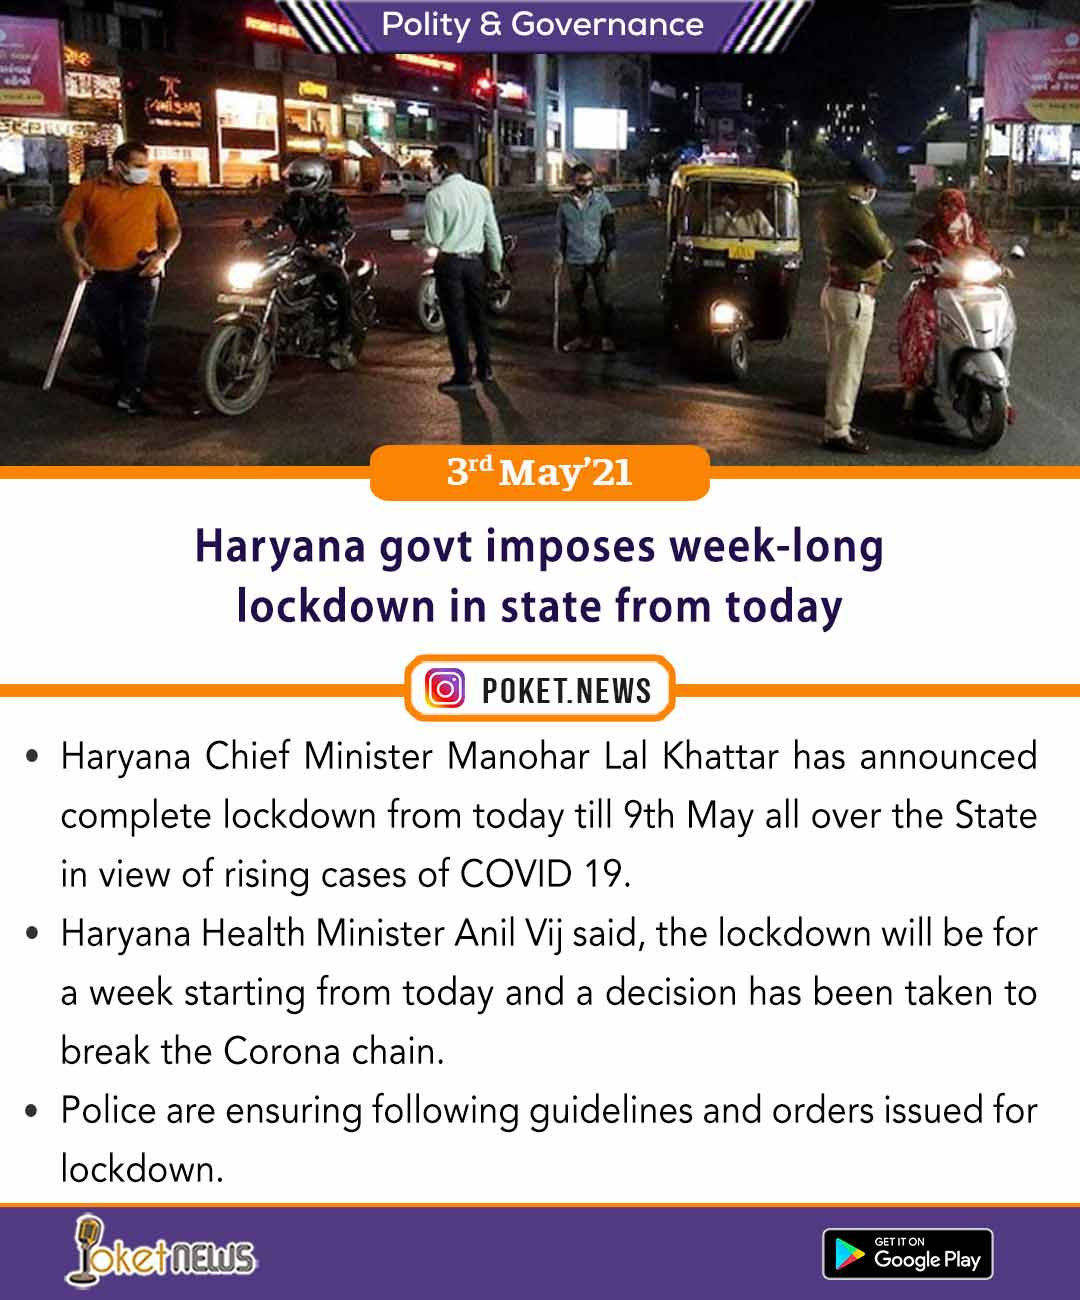 Haryana govt imposes week-long lockdown in state from today